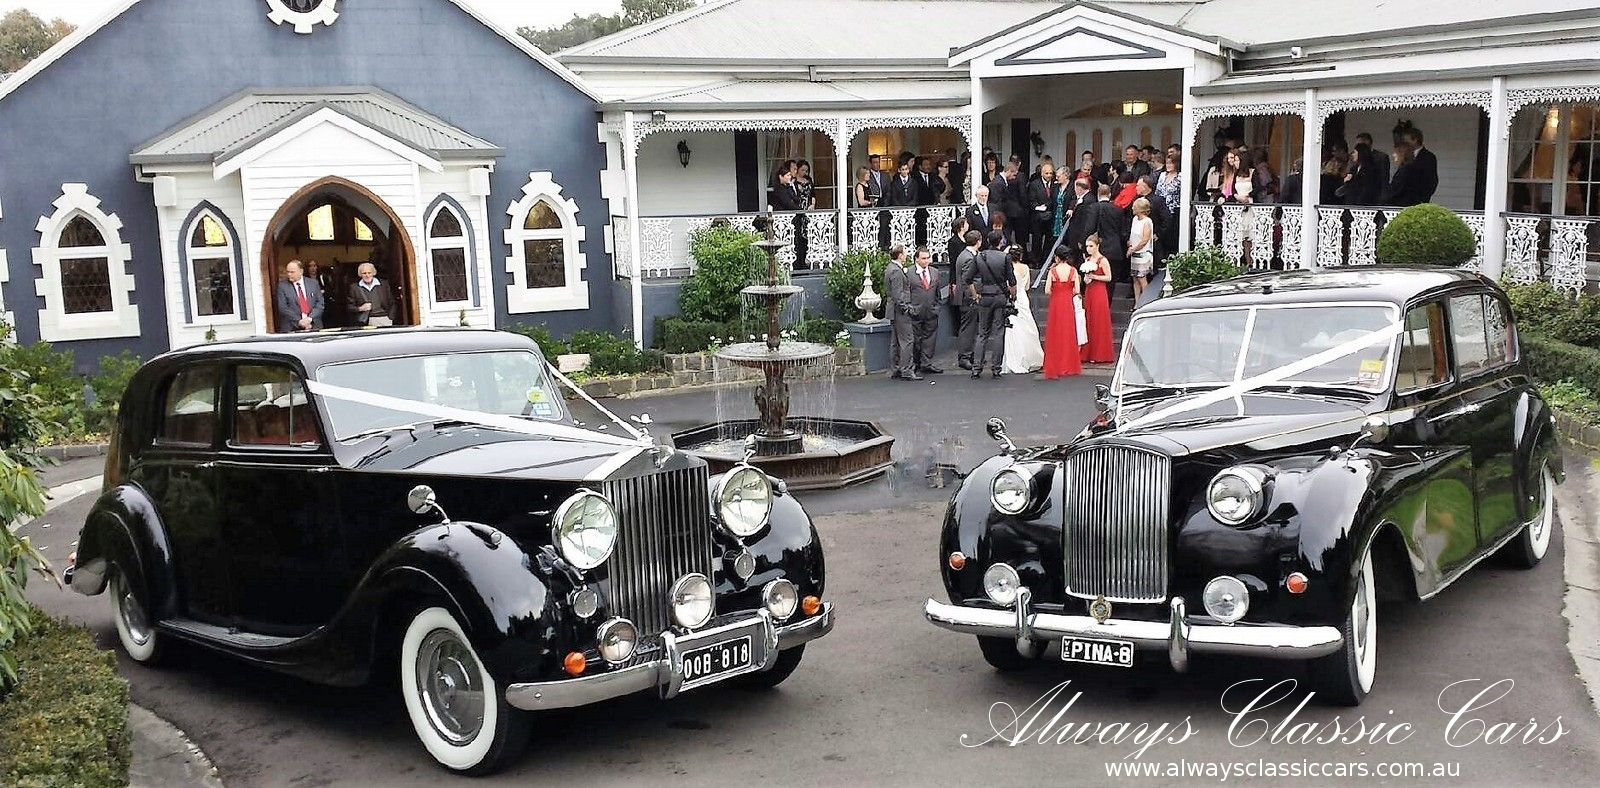 Always Classic Cars for Melbourne Weddings